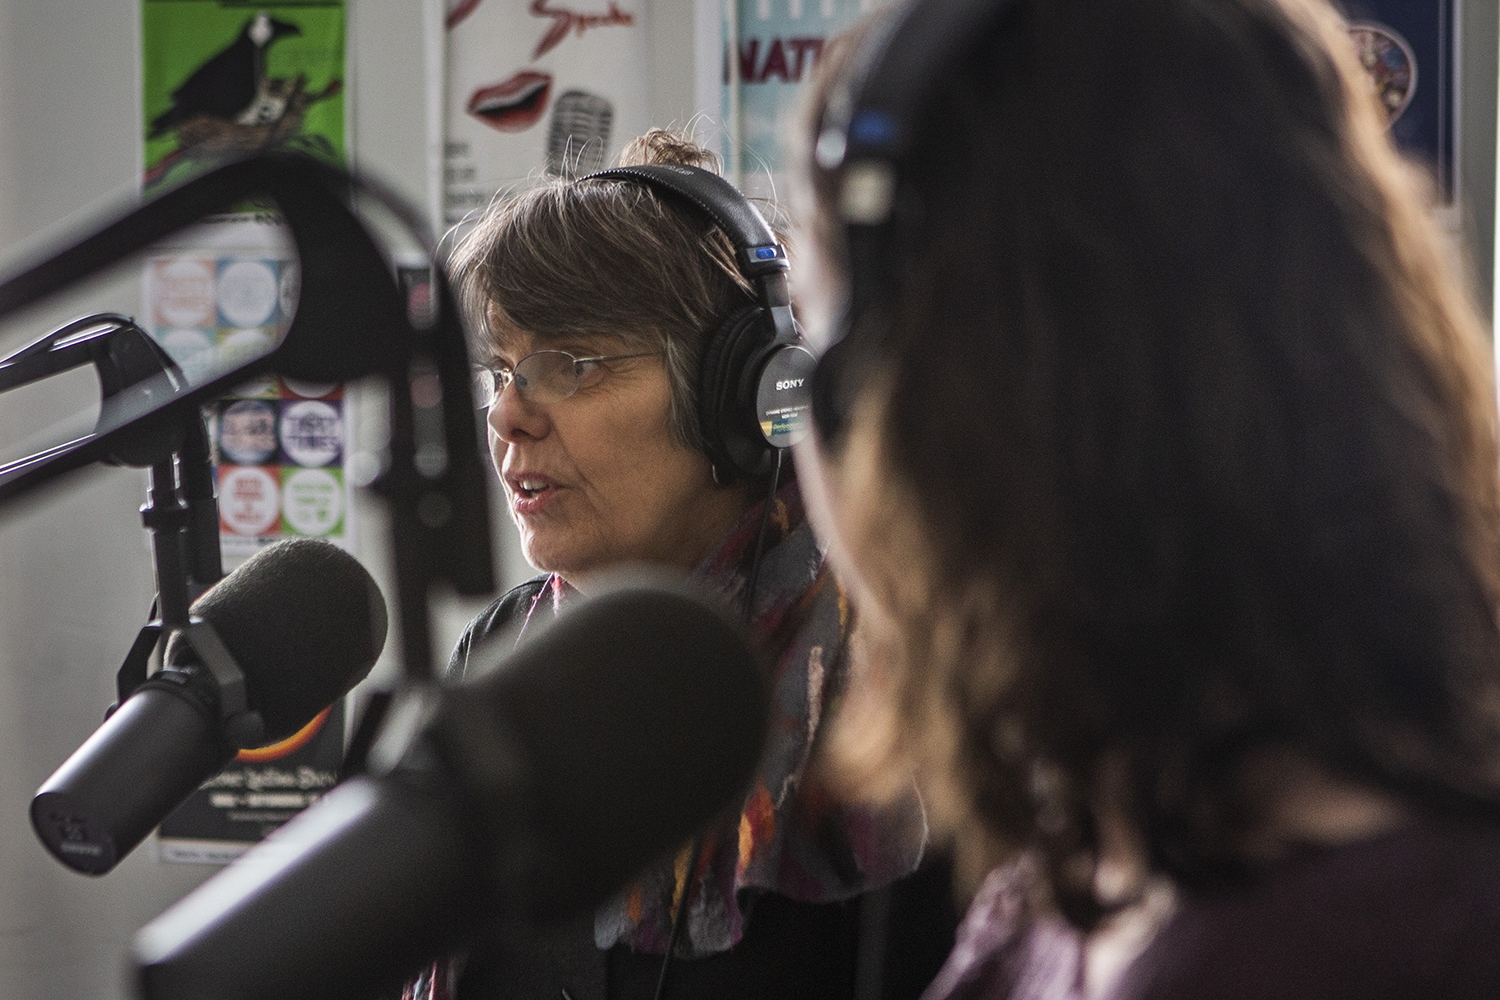 Mary Beth Tinker discusses how she and her brother John protested the Vietnam War in 1969 during an interview with the Tinkers at the KRUI studio on Tuesday, February 26, 2019. Mary Beth and John wore black arm bands to school in protest of the war, leading to the Tinker vs. Des Moines court case in 1969.(Katina Zentz/The Daily Iowan)